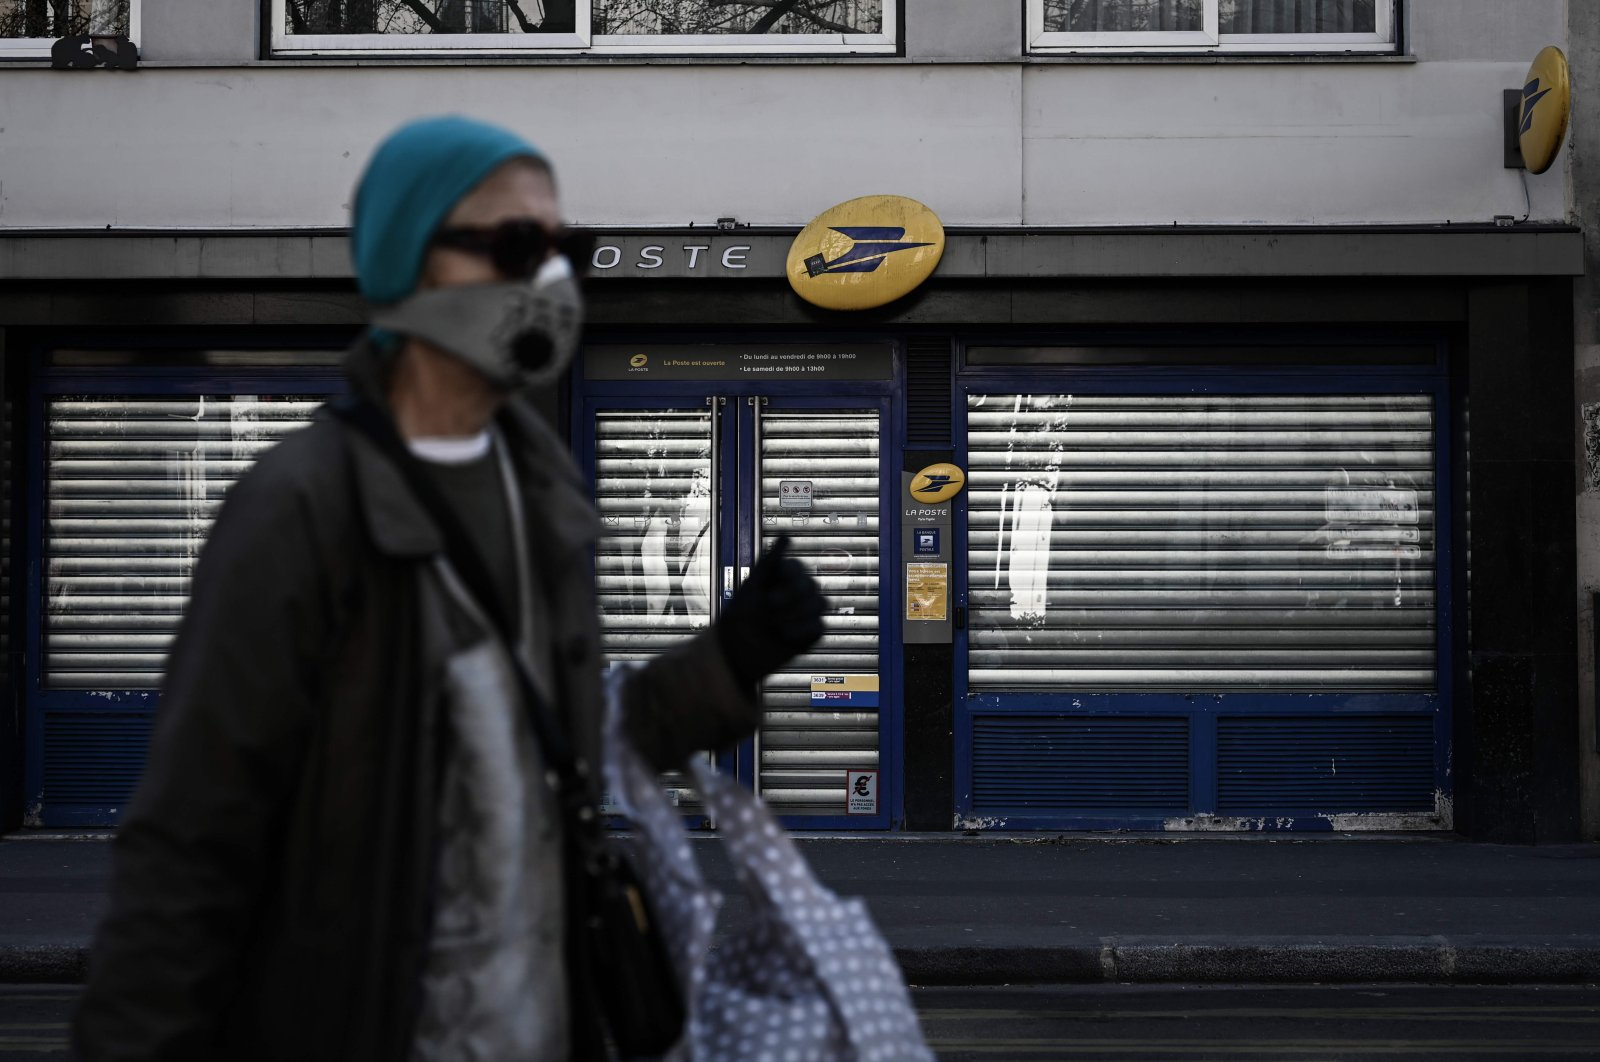 A woman wearing a protective face mask walks past a closed post office in Paris on March 31, 2020 on the 15th day of a strict lockdown in France aimed at curbing the spread of the COVID-19 infection, caused by the novel coronavirus. (AFP Photo)